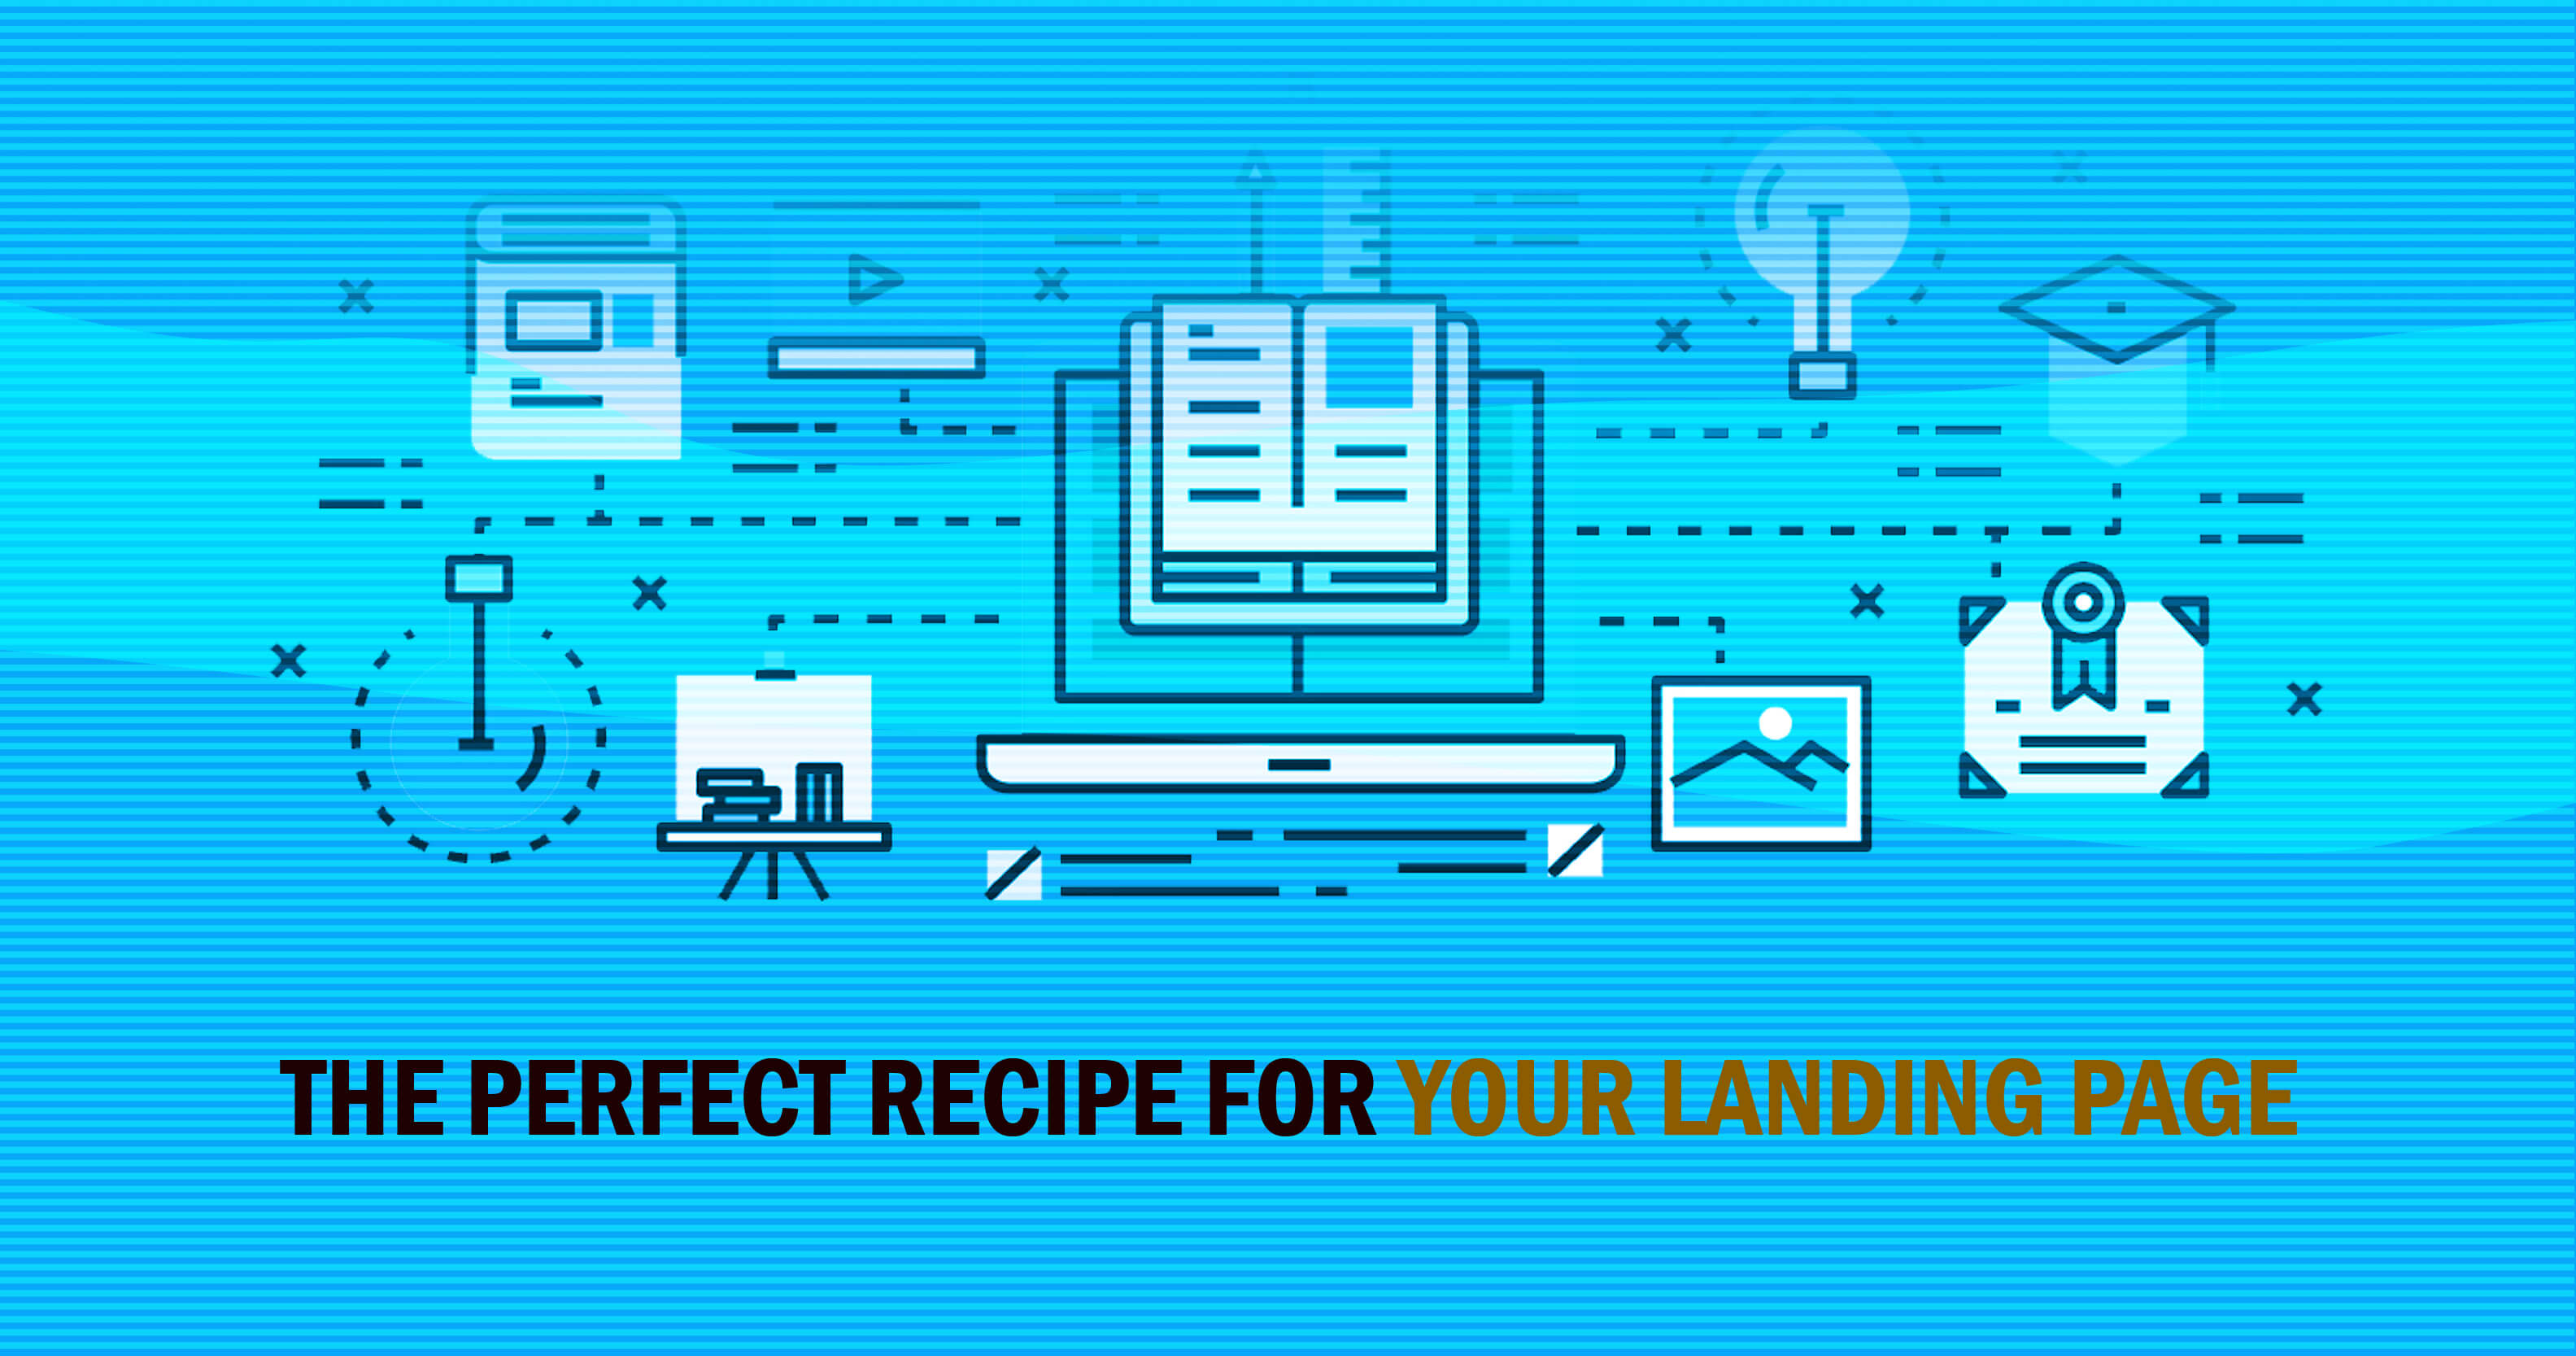 What is the Perfect Recipe for your Landing Page?